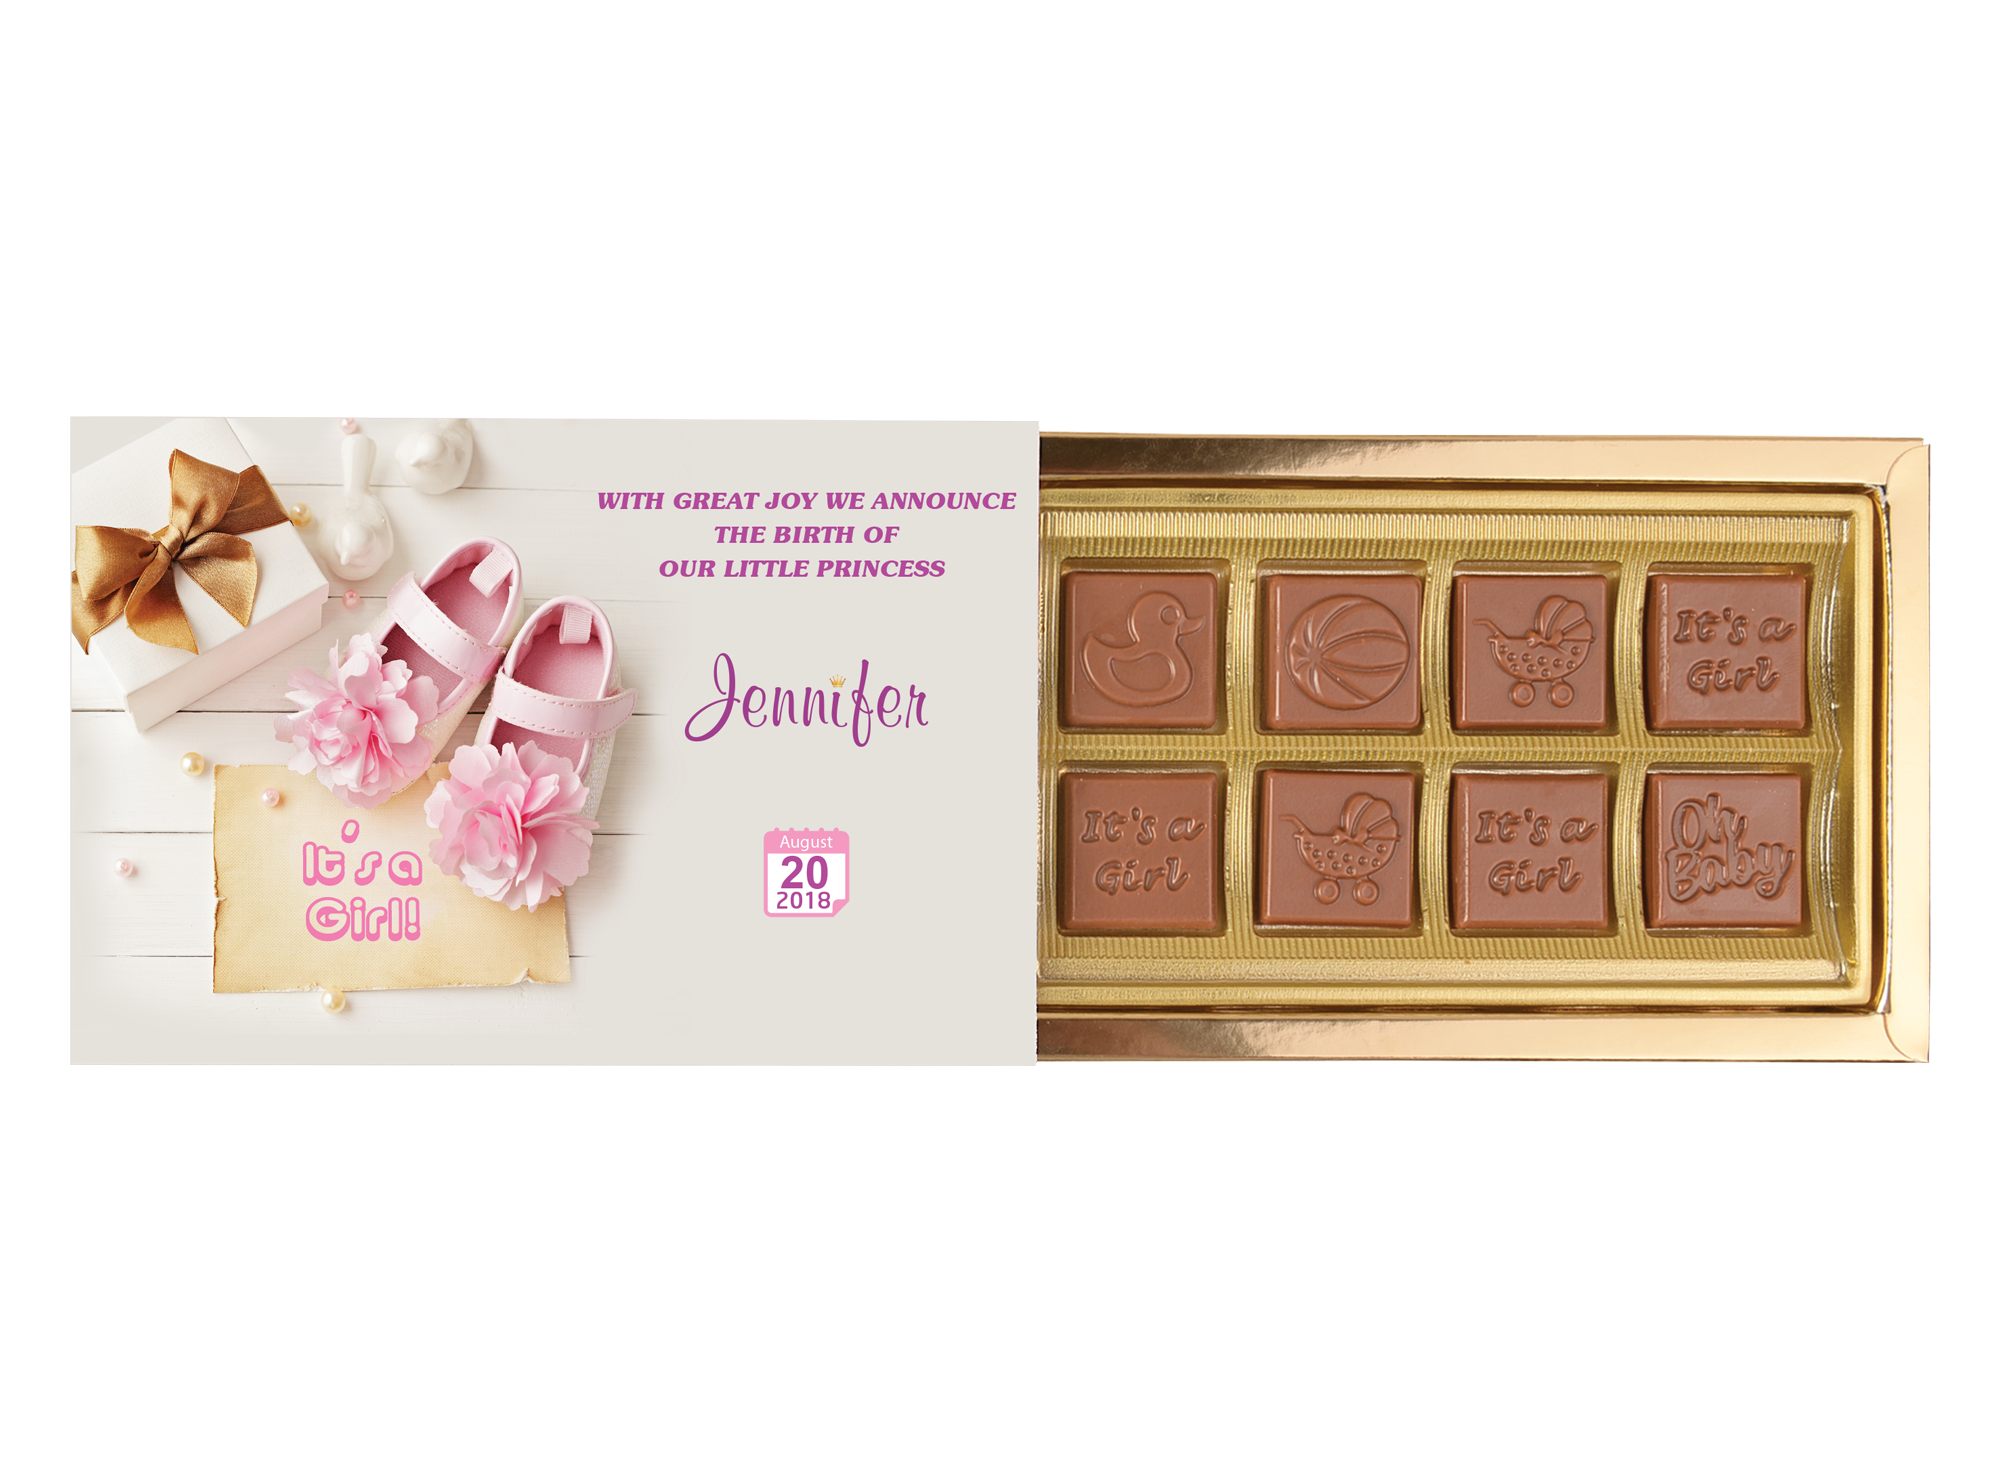 Mon Amie, 8 Pcs Customized Belgian Chocolate. It's A Girl Return Gift